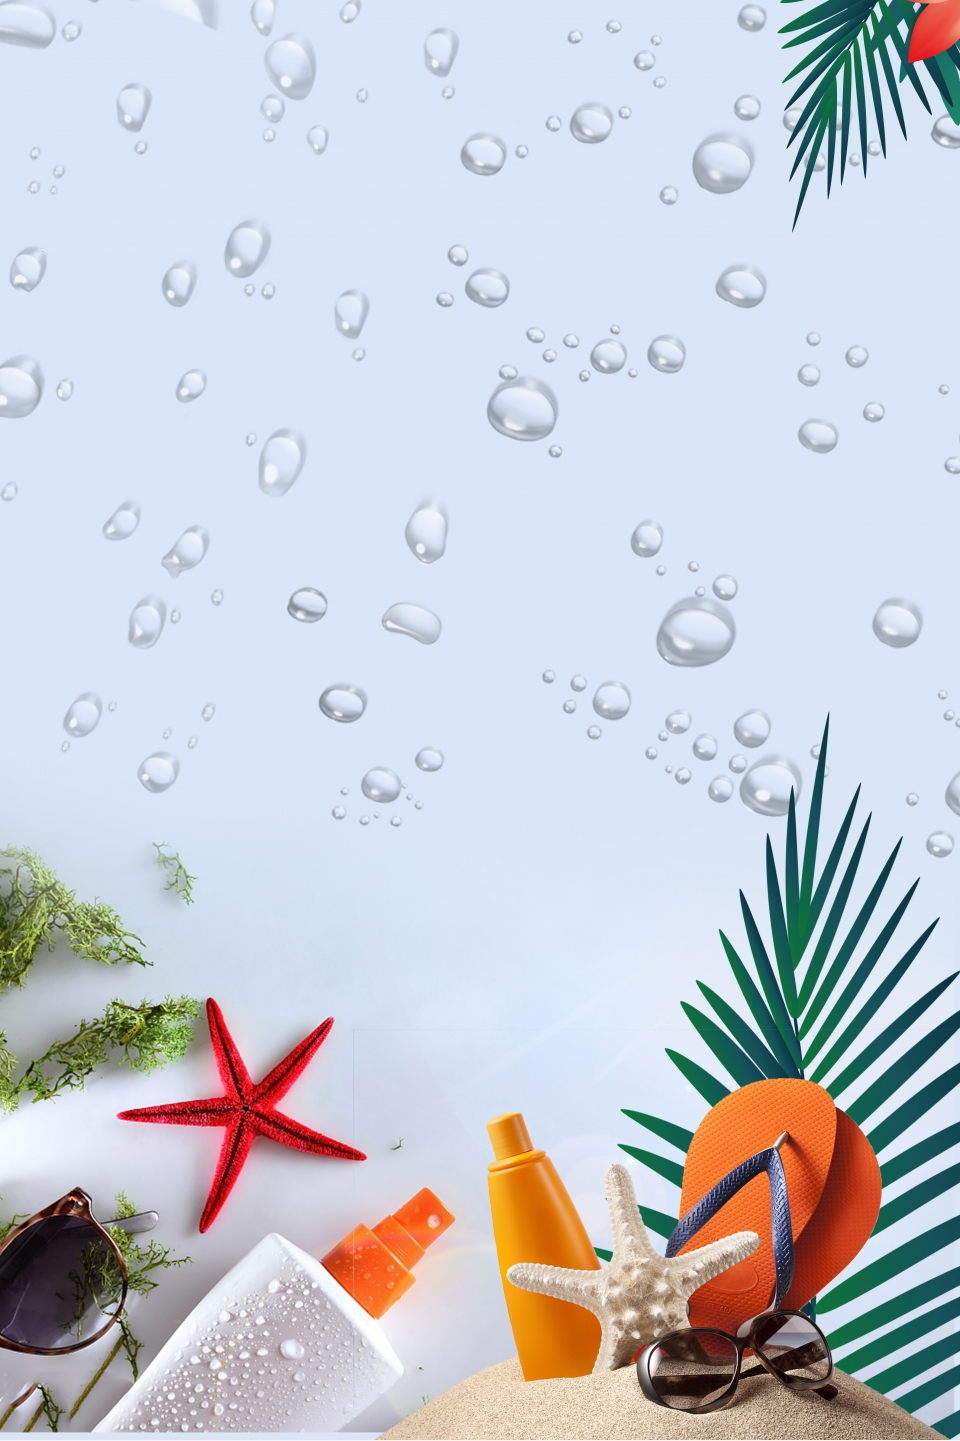 Simple Cosmetic Tropical Background Cosmetics Skin Care Products Toner Background Image For Free Download